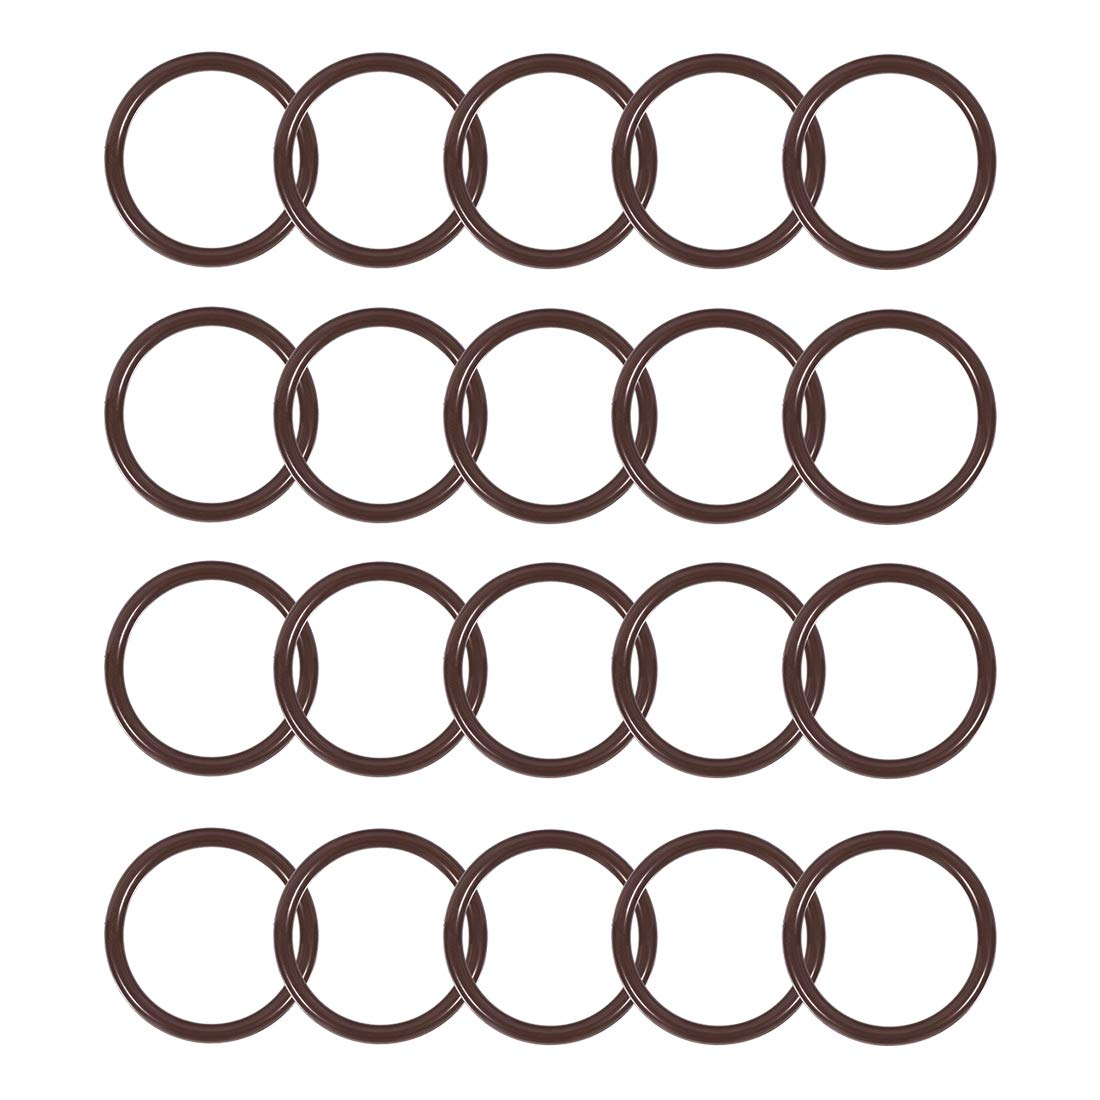 Black with a smooth finish 1//8 Thick Sterling Seal CRG7000I.1600.125.300X20 7000I Grafoil Ring Gasket Pack of 20 Pressure Class 300# 16 ID 16 Pipe Size